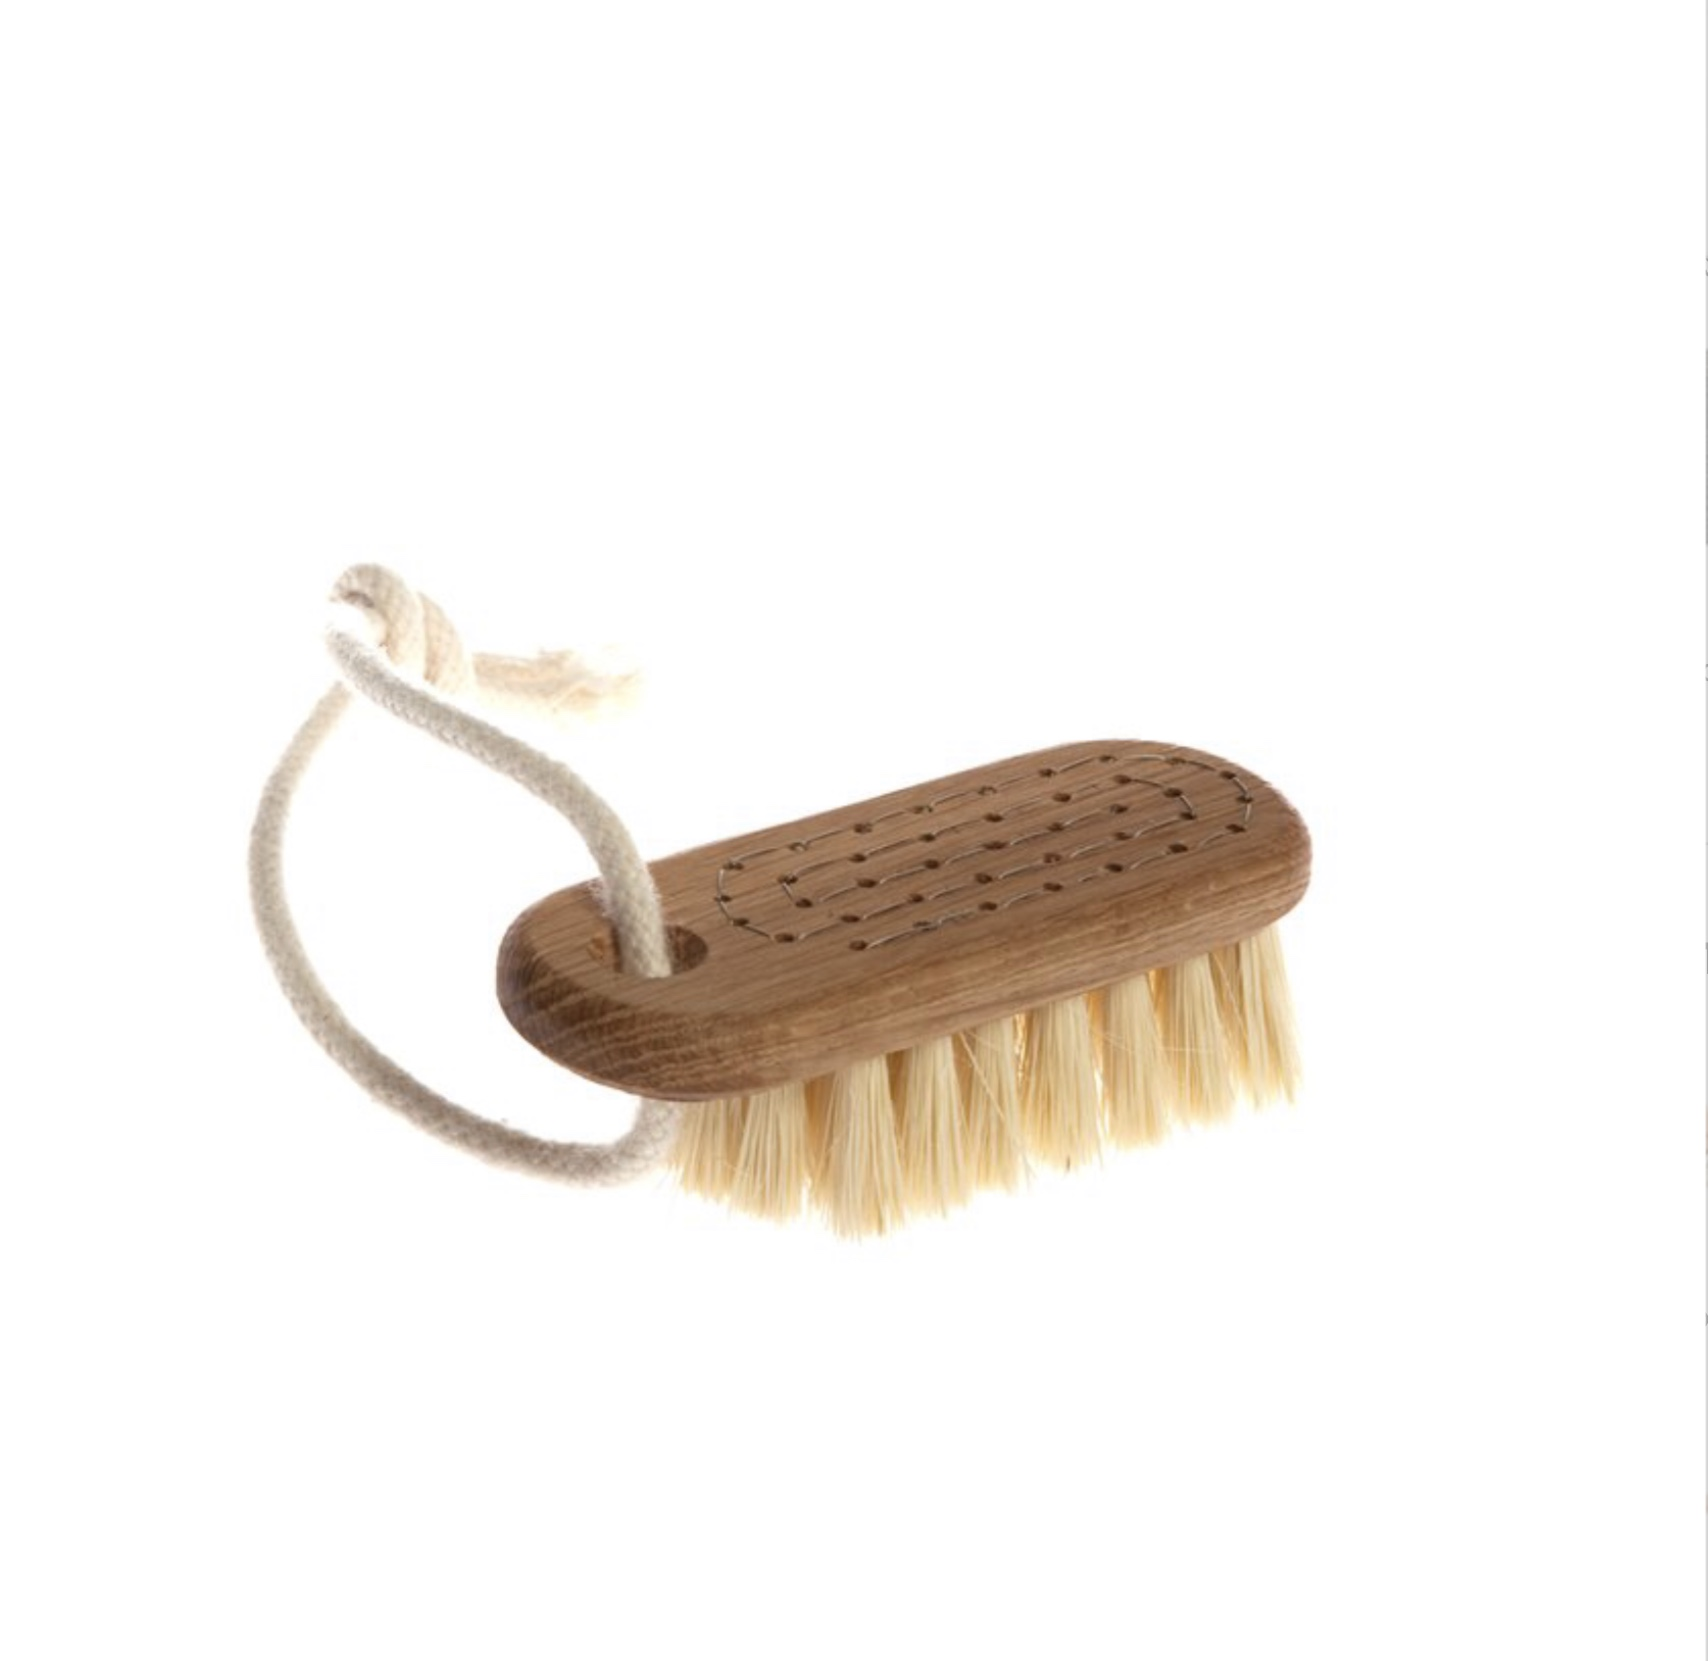 Iris Hantverk Nail Brush With String